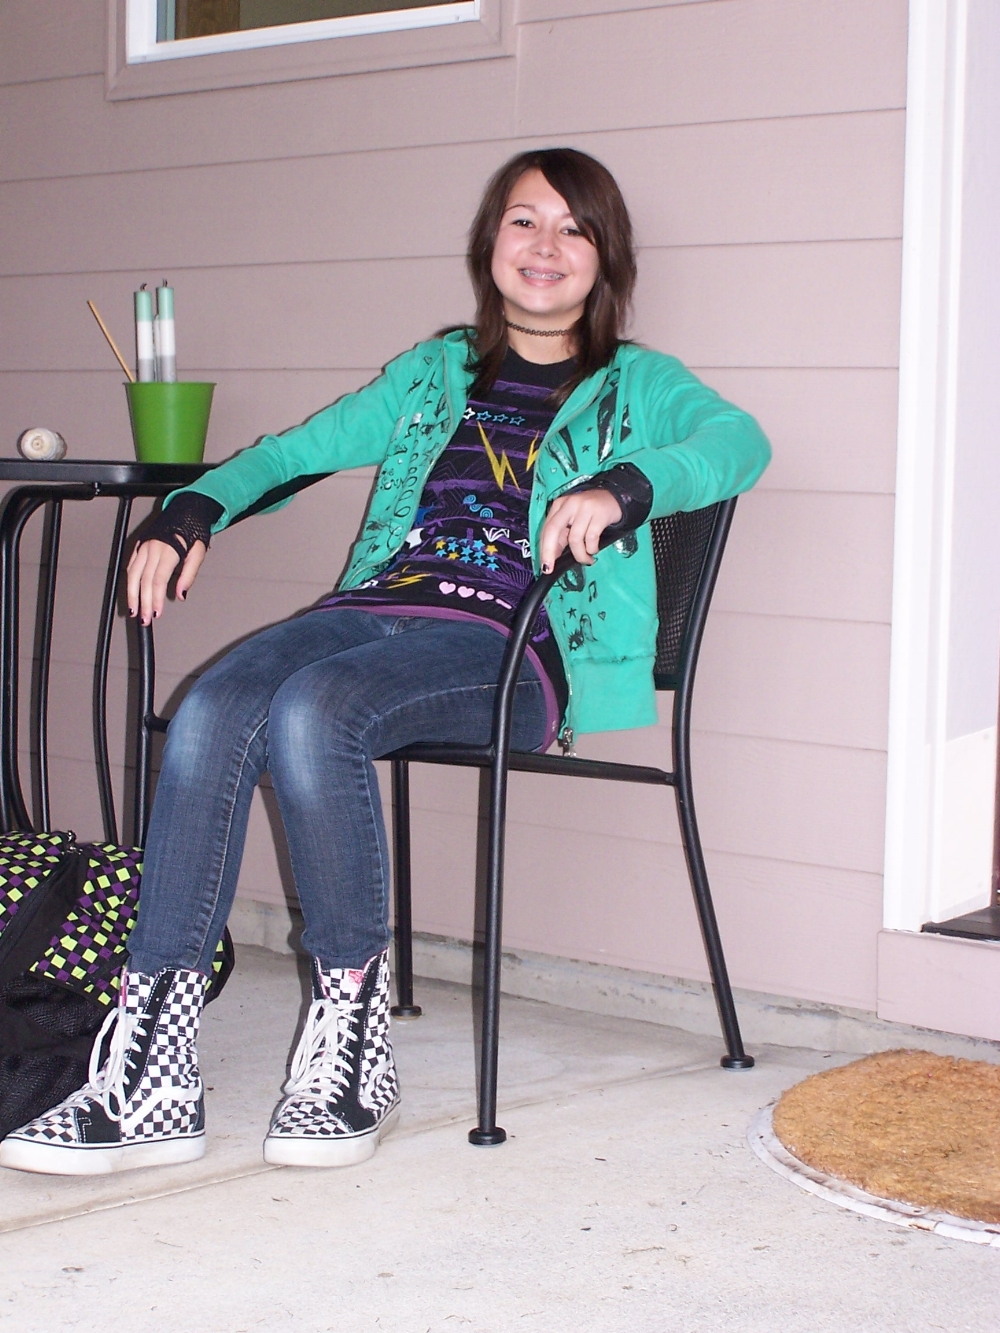 First day of school, 2008. (And a lot of patterns for one photograph.)